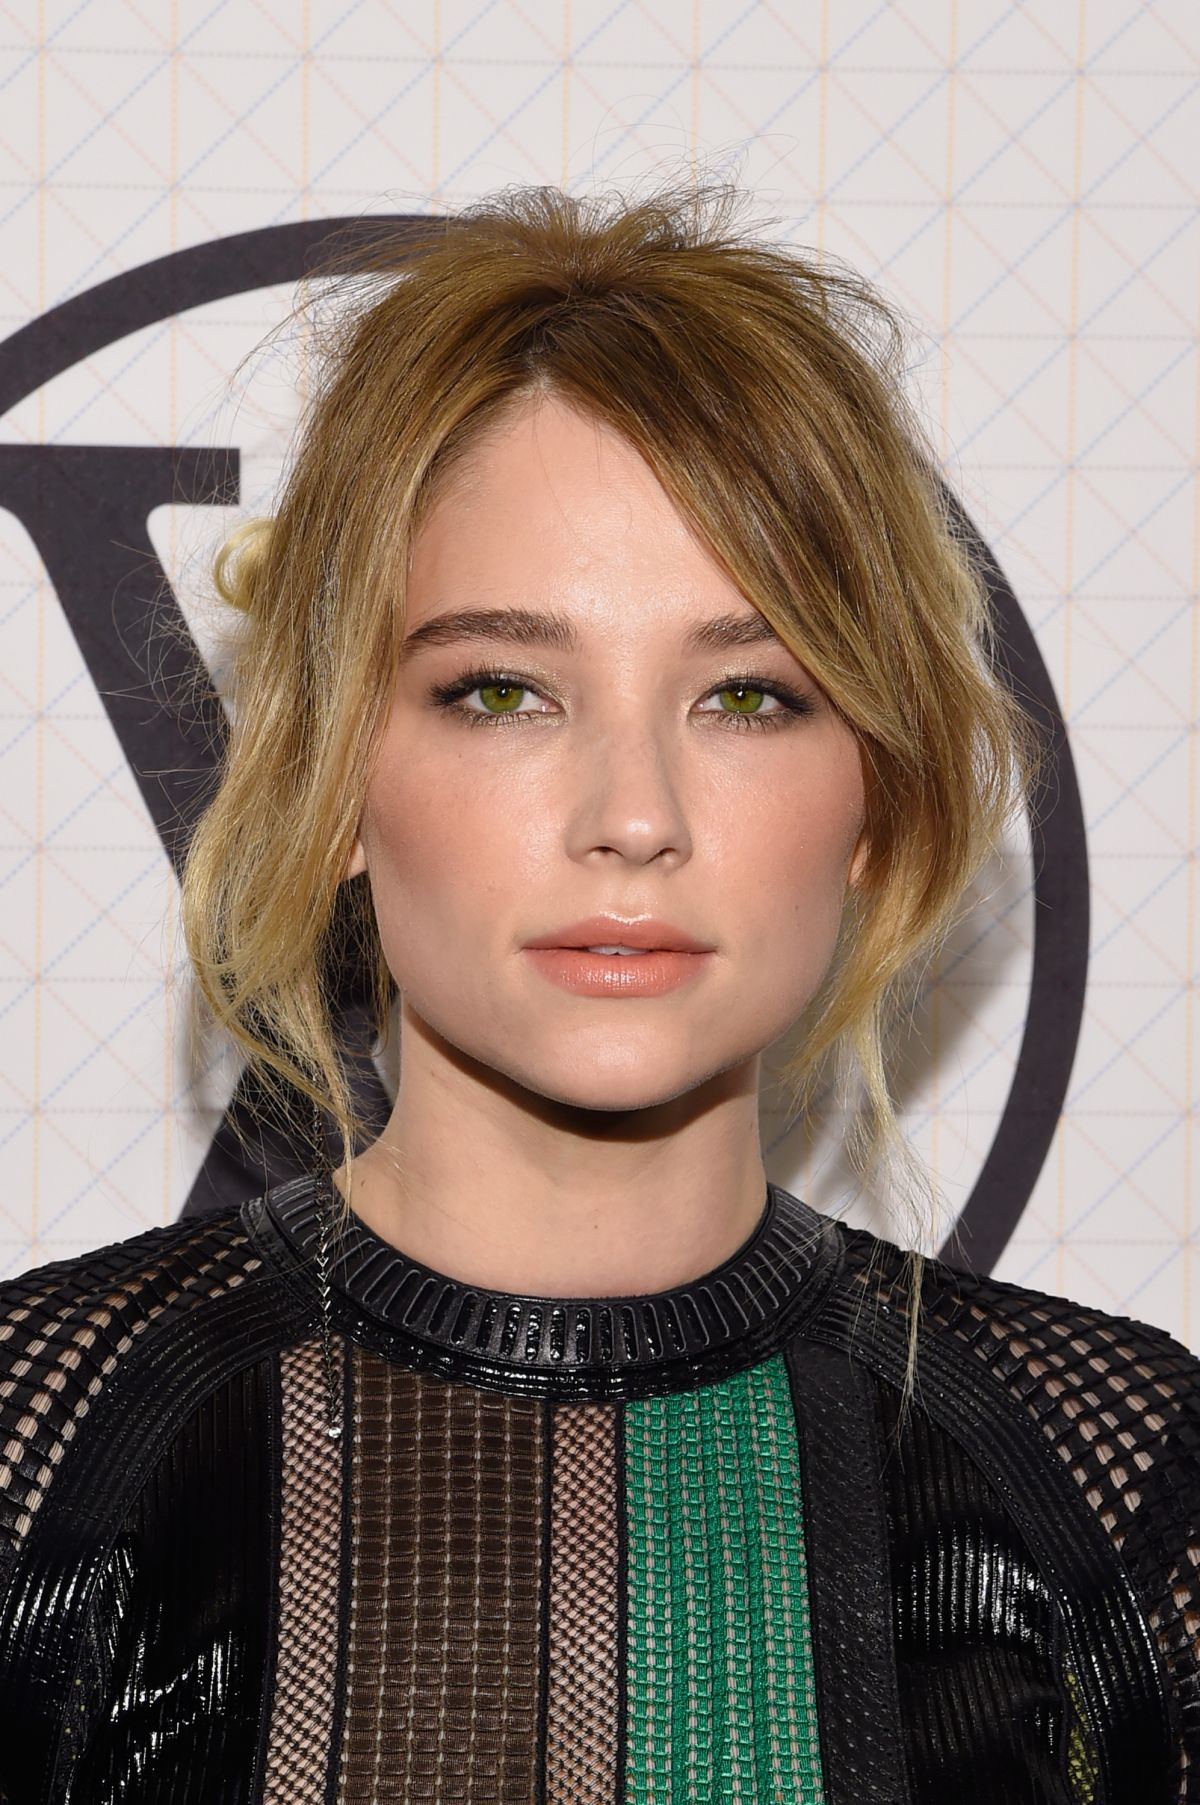 Haley Bennett At Louis Vuitton Monogram Celebration